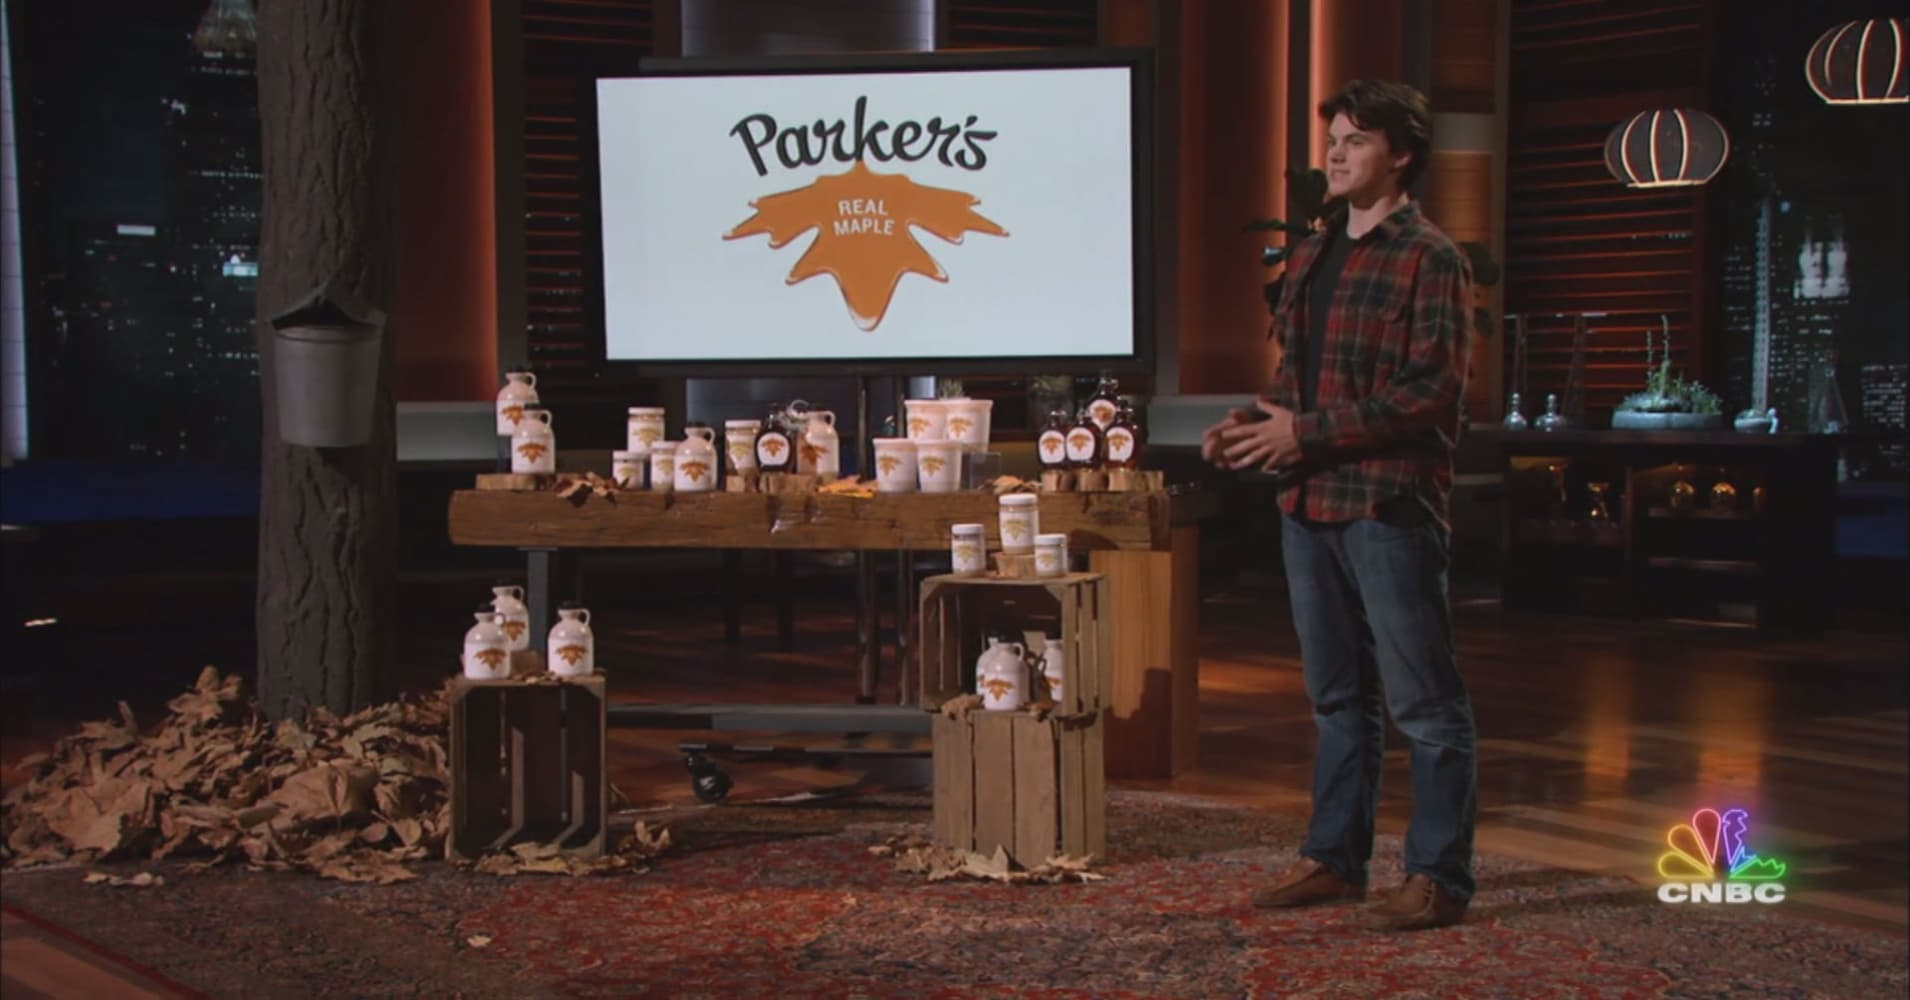 1a24d7aabb4 This young entrepreneur brings a new twist to the maple syrup industry on  Shark Tank